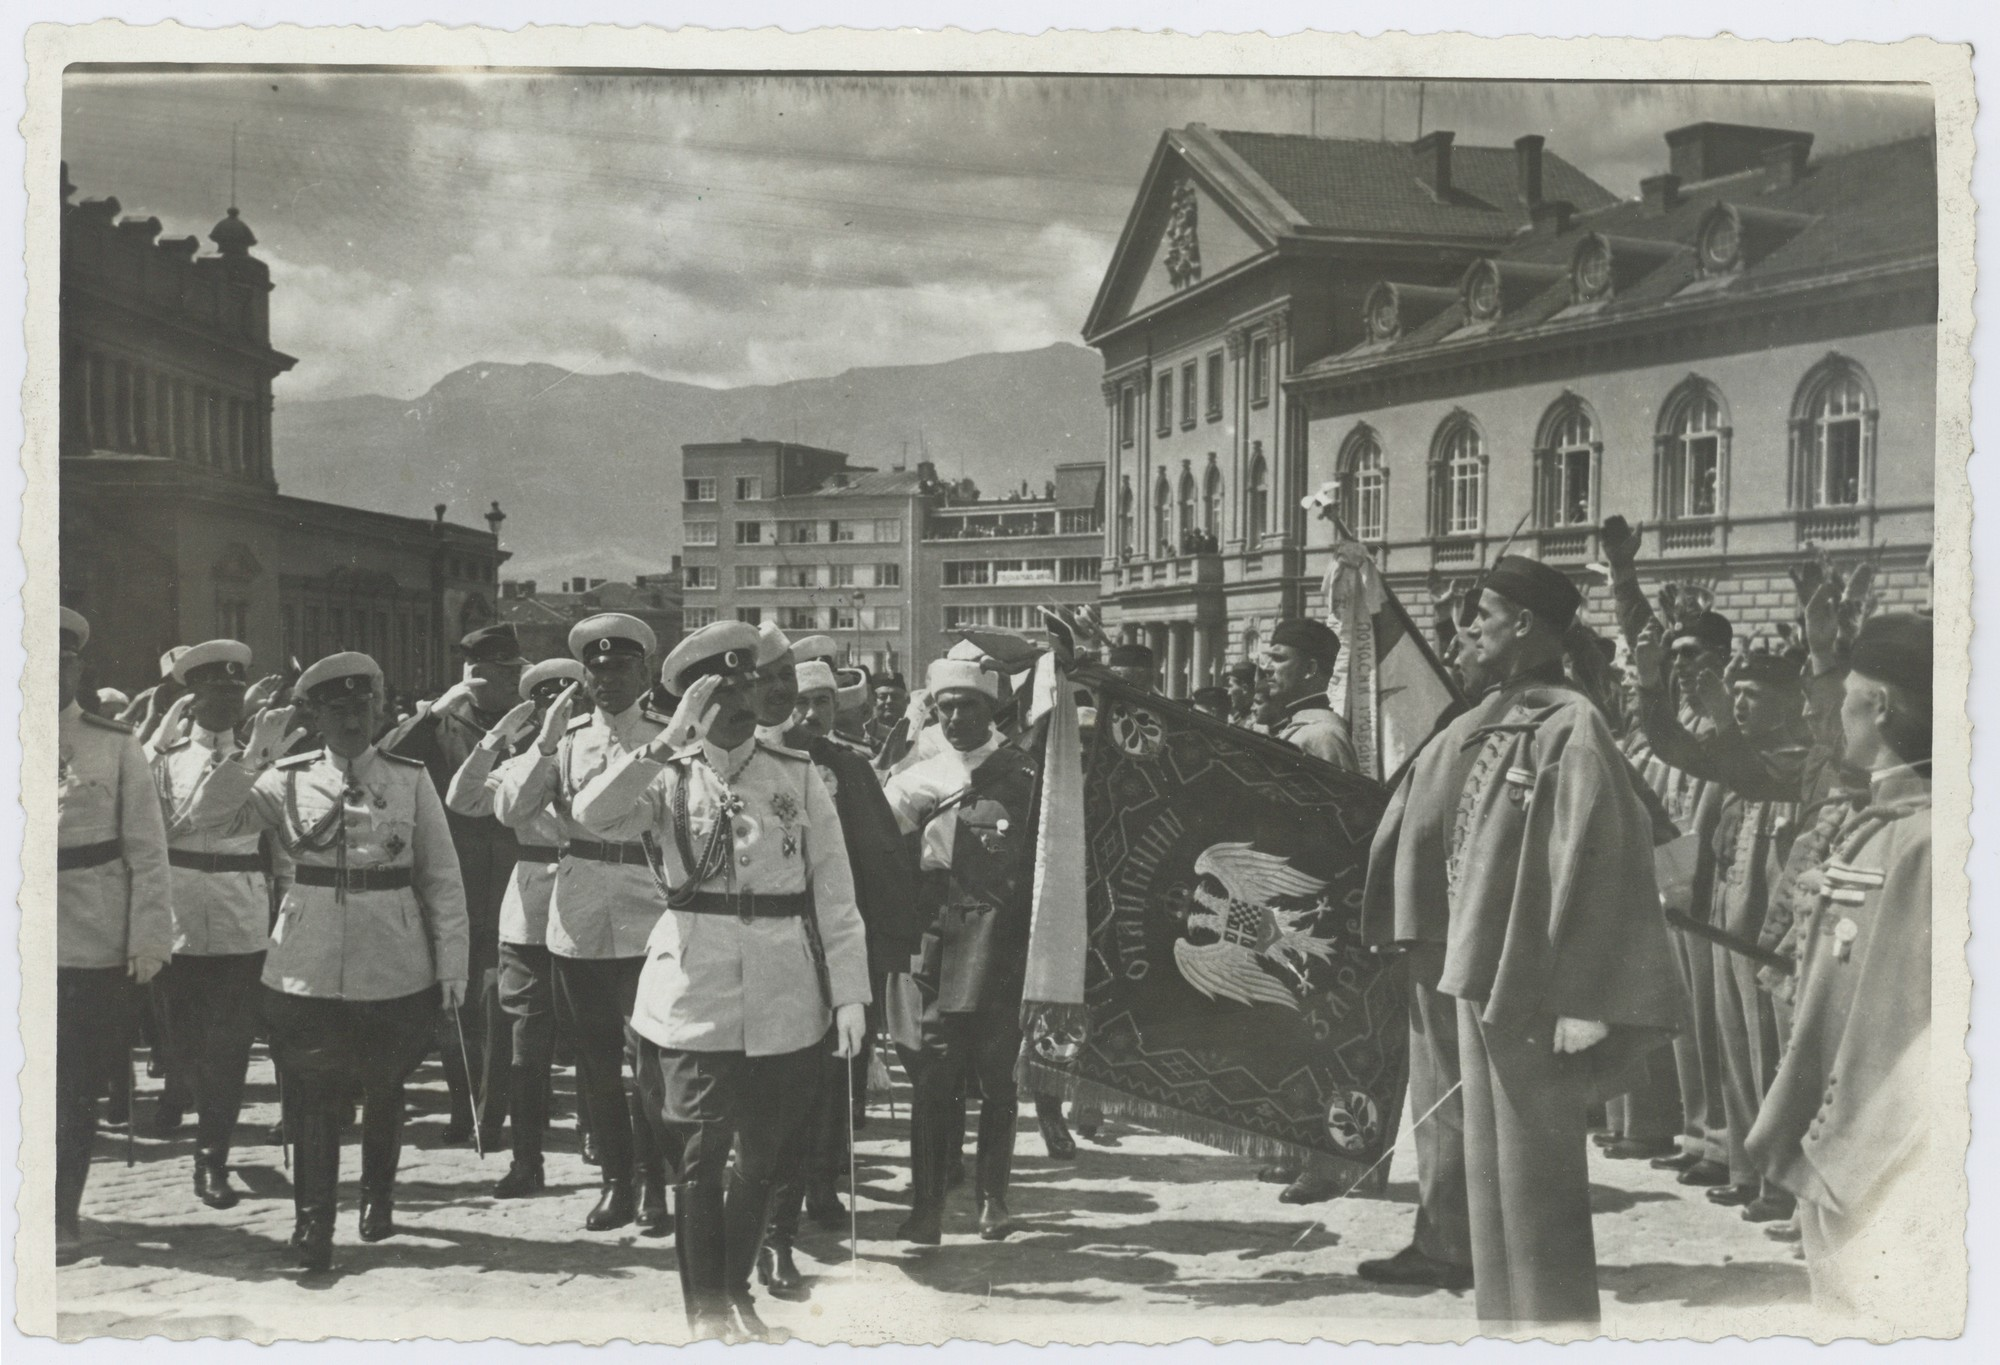 King Boris III and Bulgarian officers, © Scientific Archive of the Bulgarian Academy of Sciences